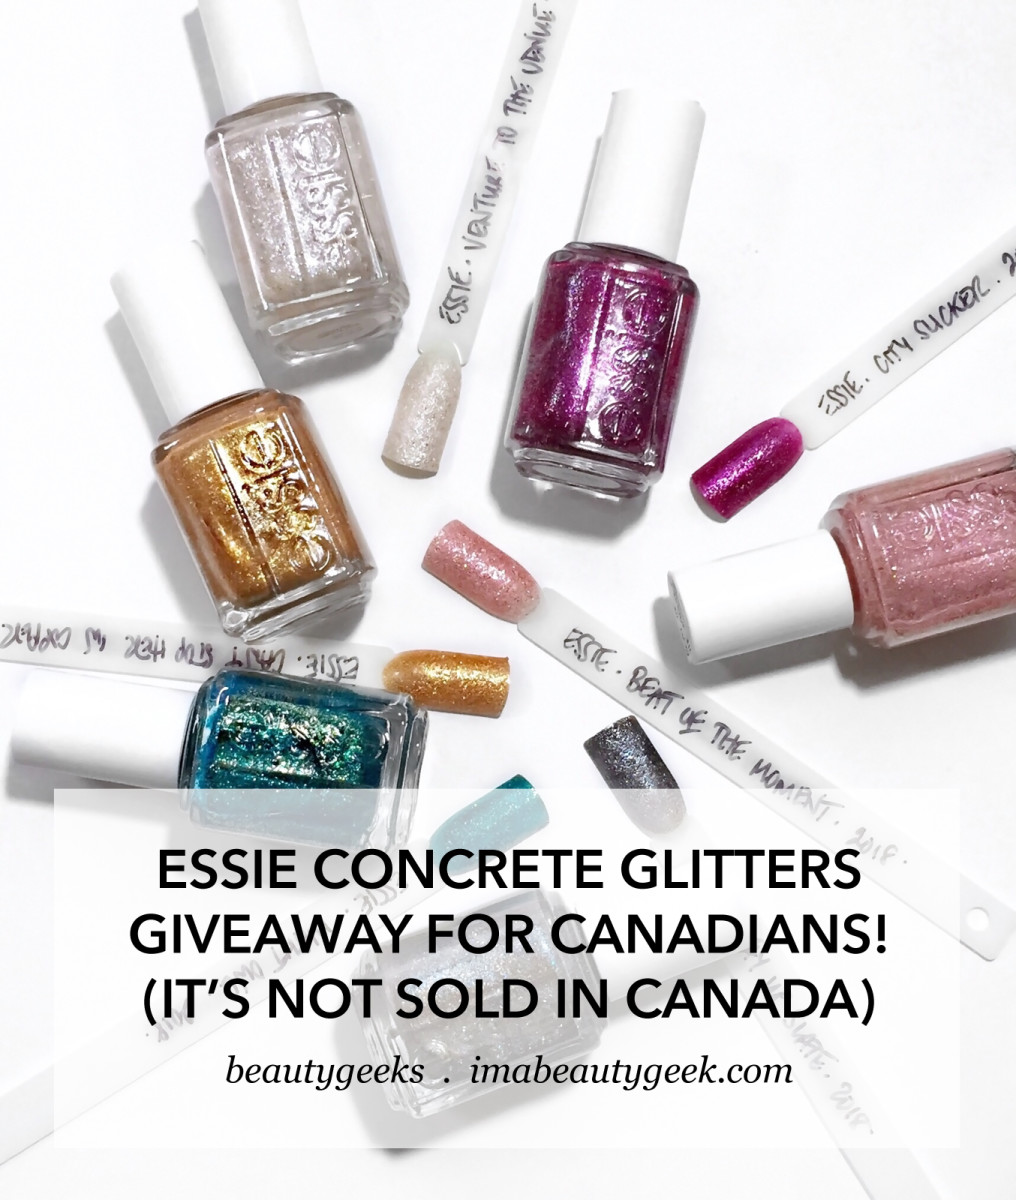 Essie Concrete Glitters giveaway for Canadians